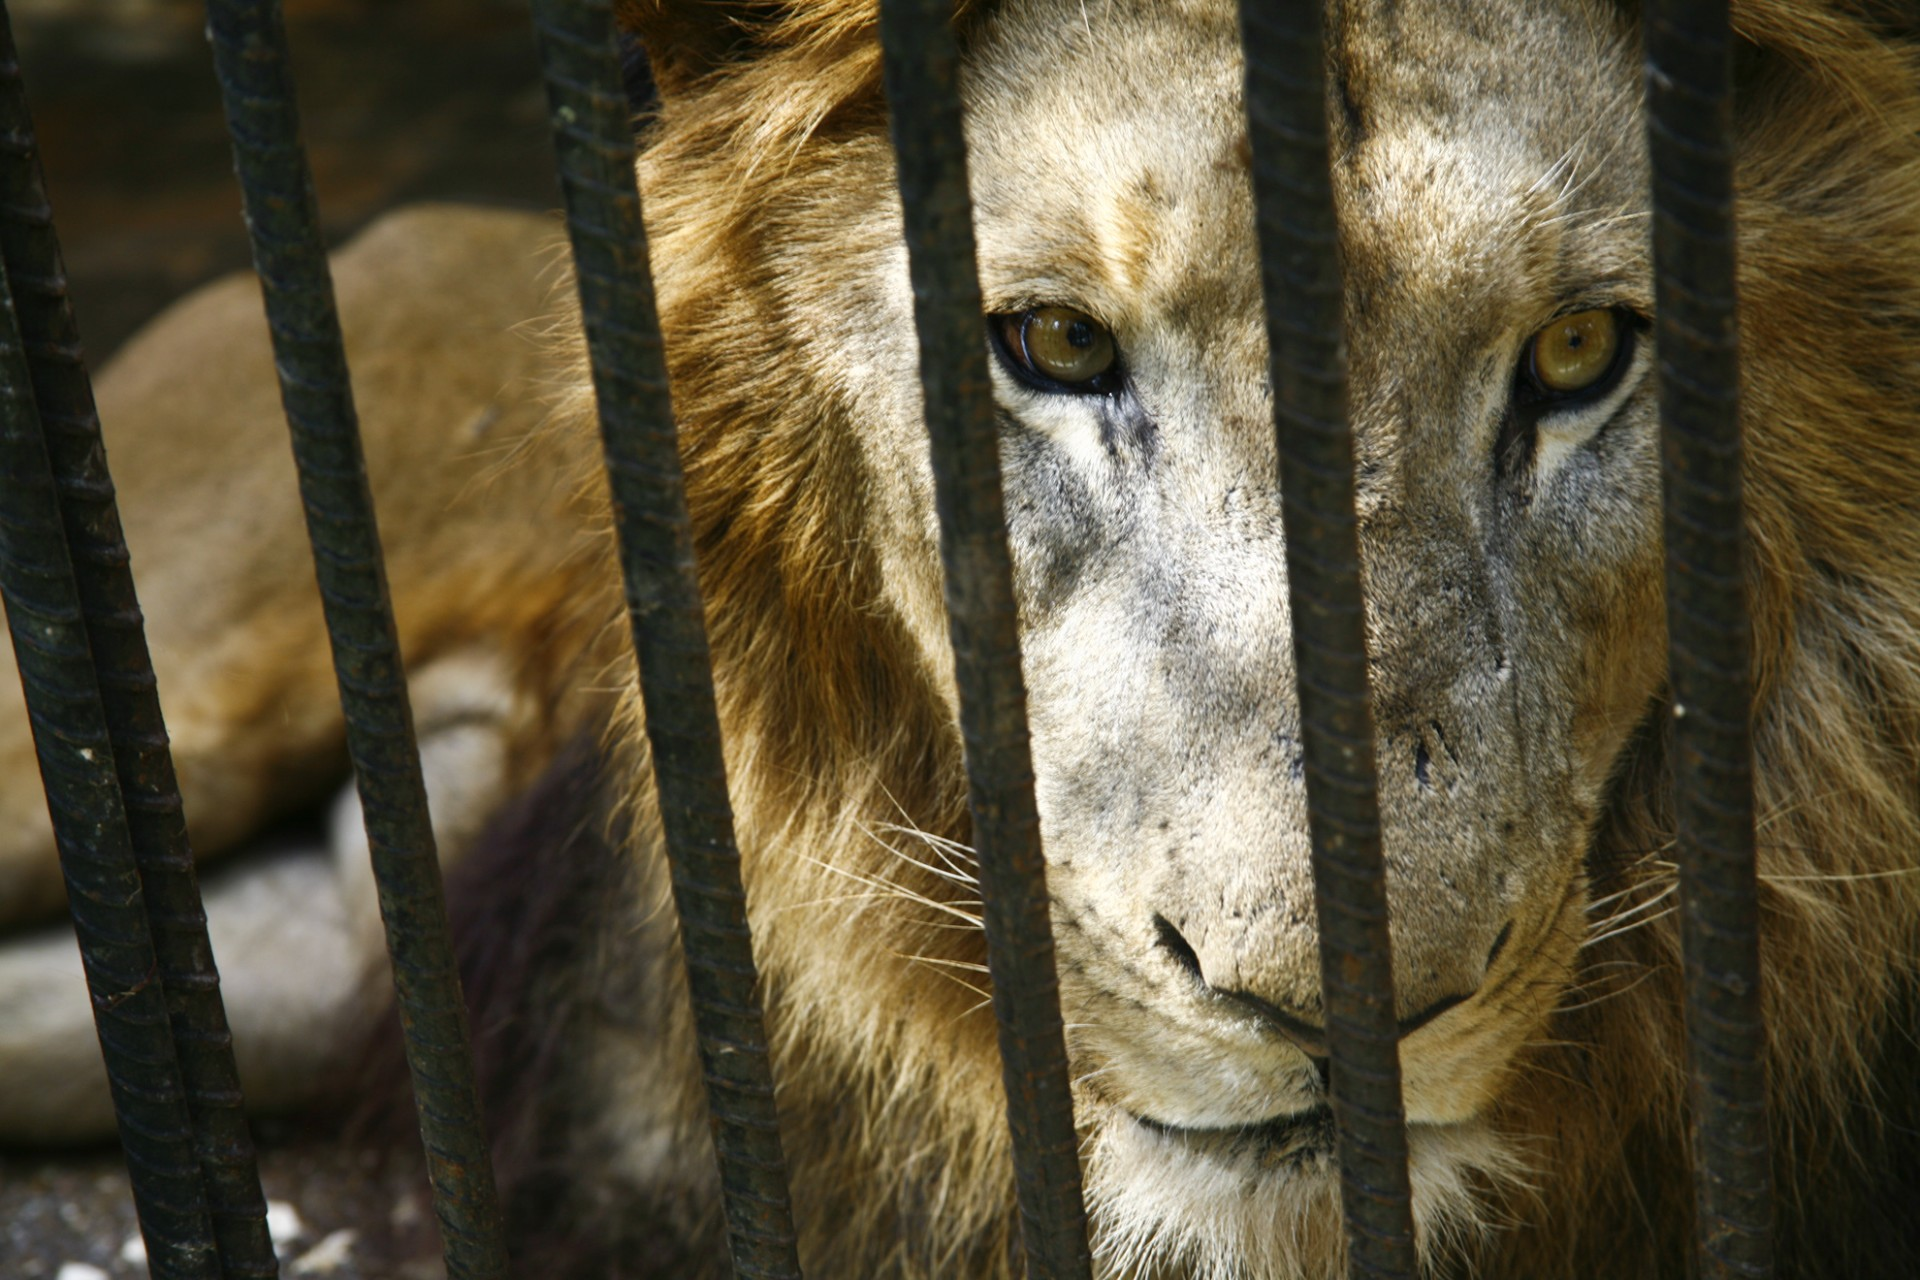 animals in captivity Animals behind cages, starving and dying, is an awful sight it's an image that underlines the callousness with which humans treat other creatures and indeed themselves.